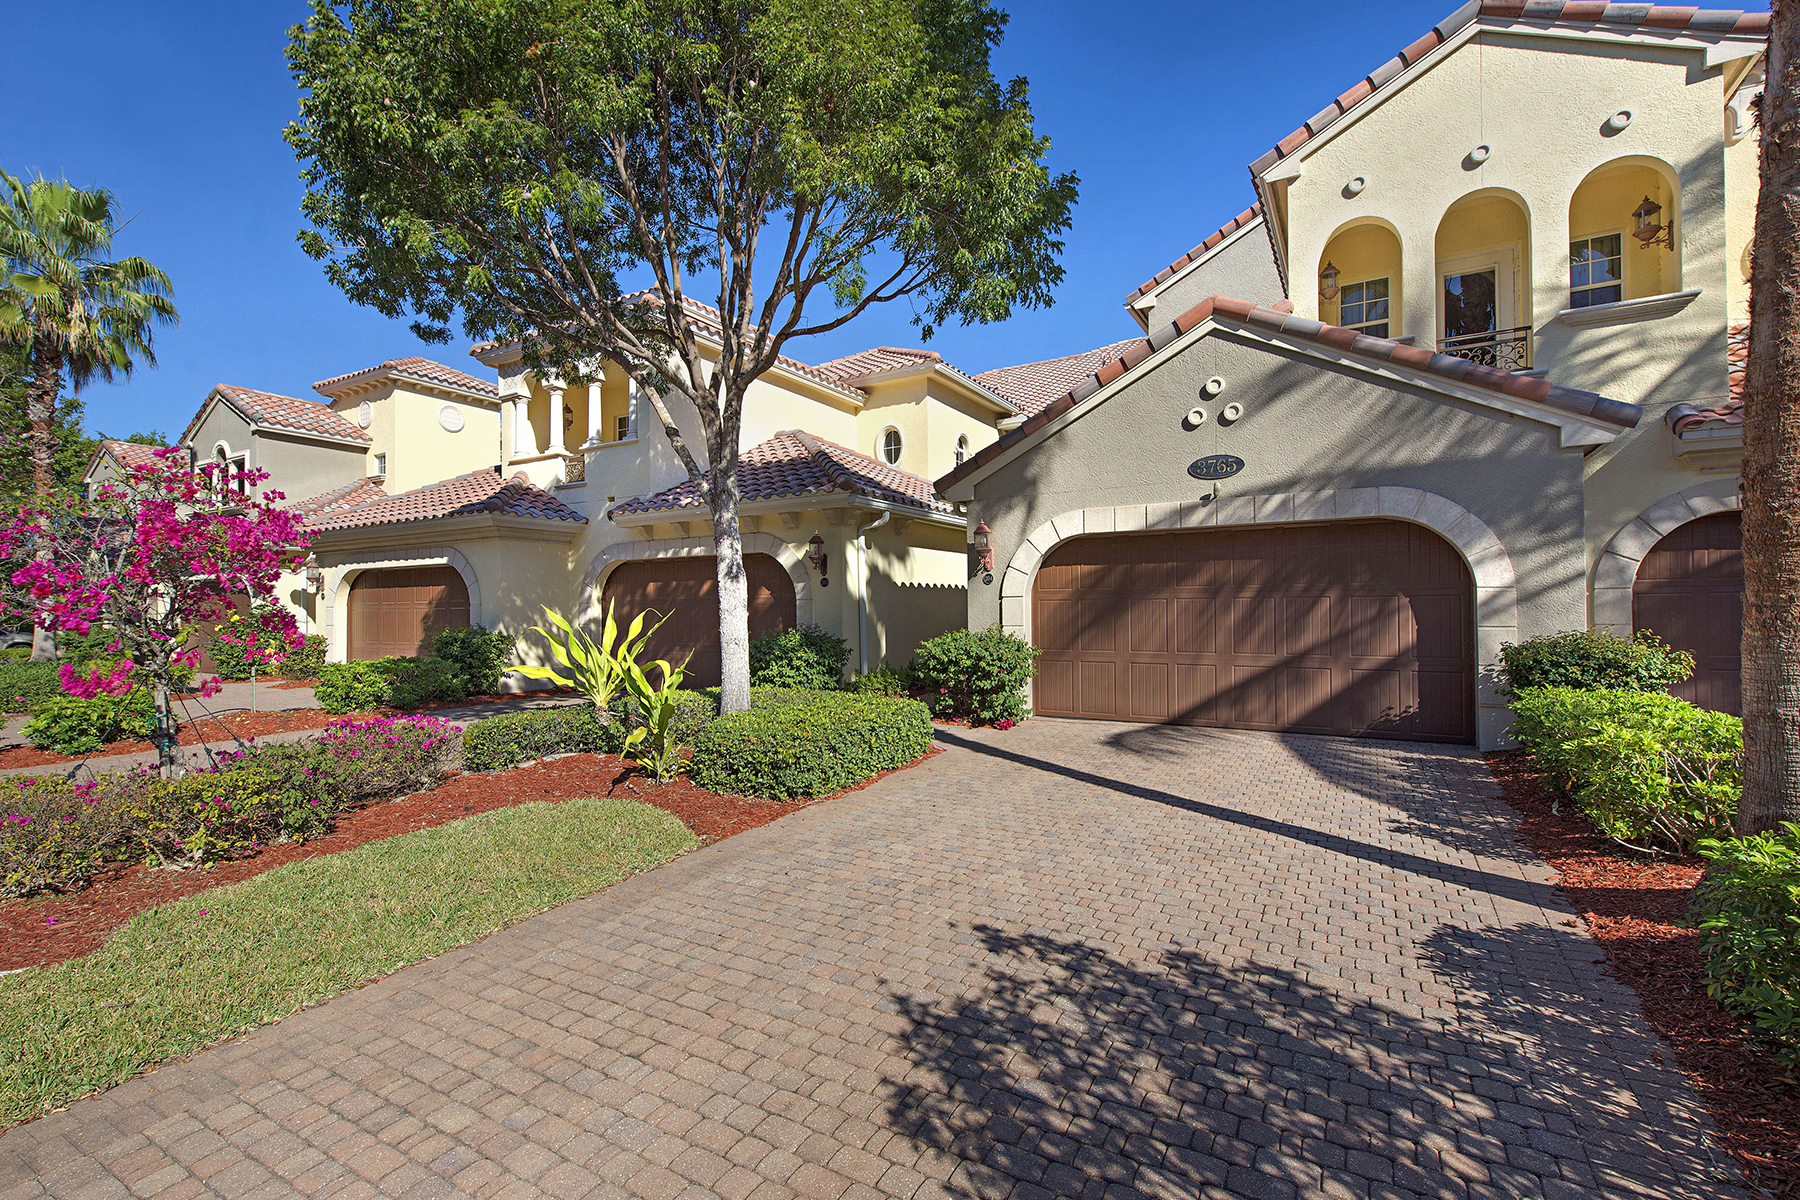 Condominium for Sale at FIDDLERS CREEK 3765 Montreux Ln 204, Naples, Florida, 34114 United States